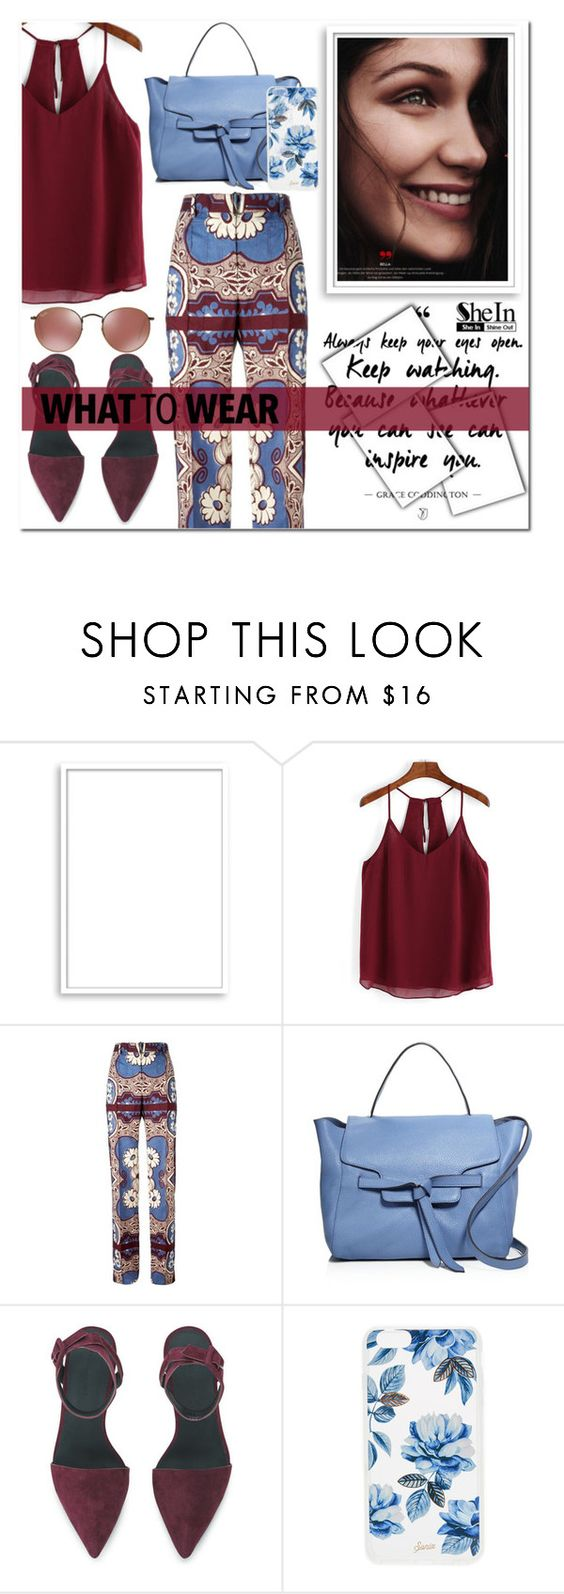 """""""SheIn ♥"""" by av-anul ❤ liked on Polyvore featuring Bomedo, Valentino, Annabel Ingall, Alexander Wang, Sonix, shein and avanul"""